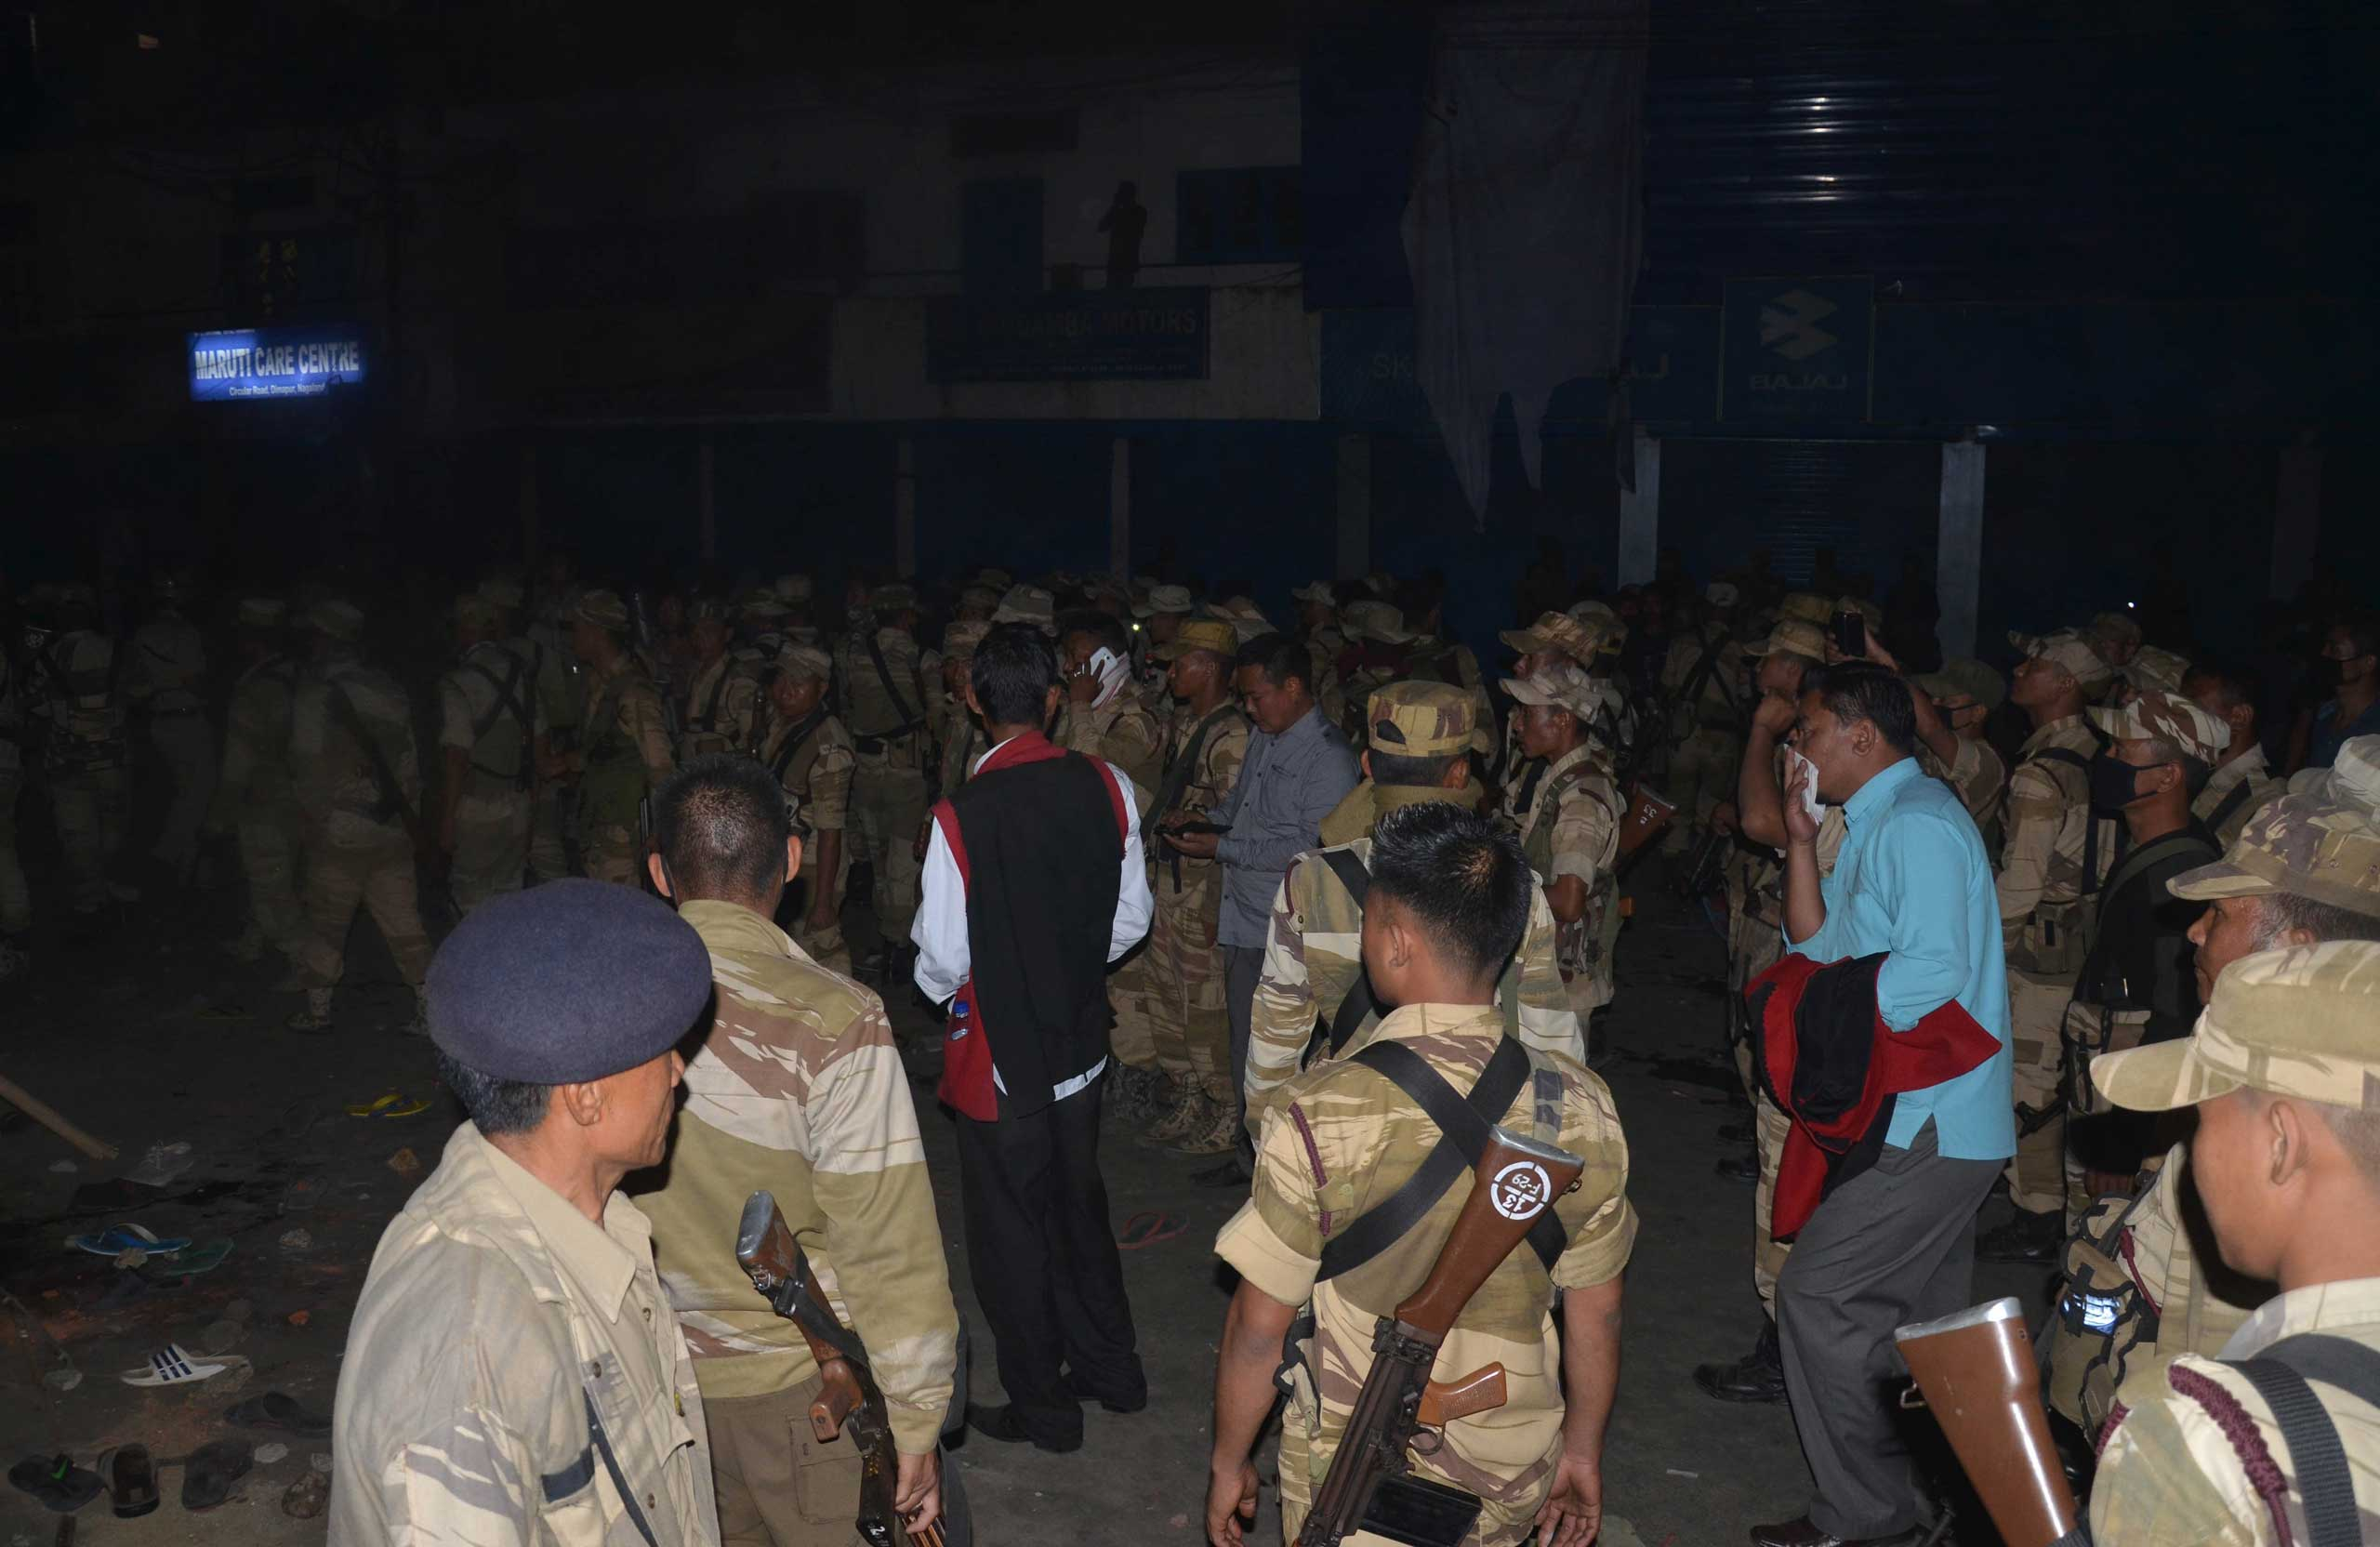 Security personnel clear the crowd after the mob killed accused rapist Syed Farid Khan, Dimapur, India, March 5, 2015.